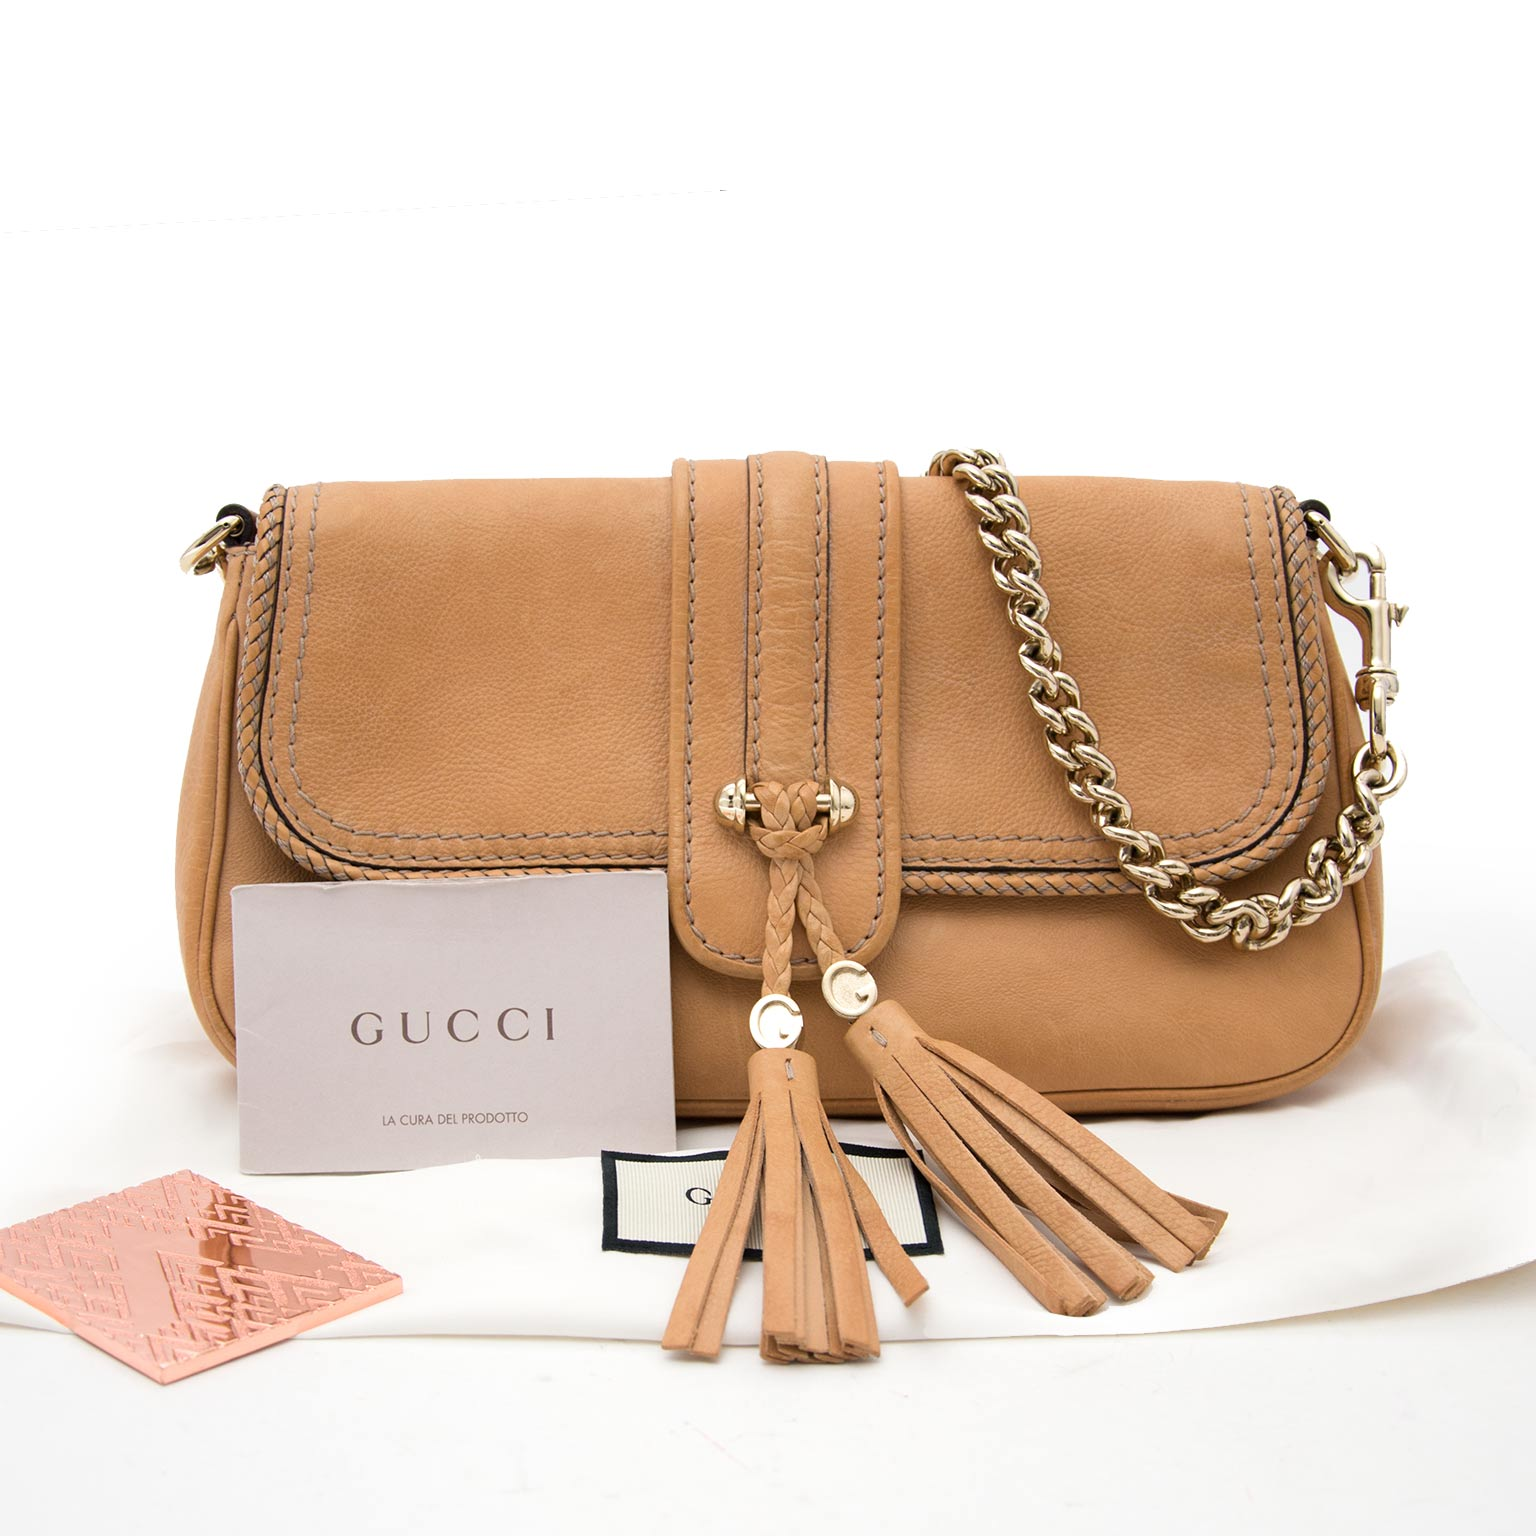 shop your second luxury bag at the best price acheter en ligne pour le meilleur prix sac a main Gucci Nude Woven Detailed Clutch